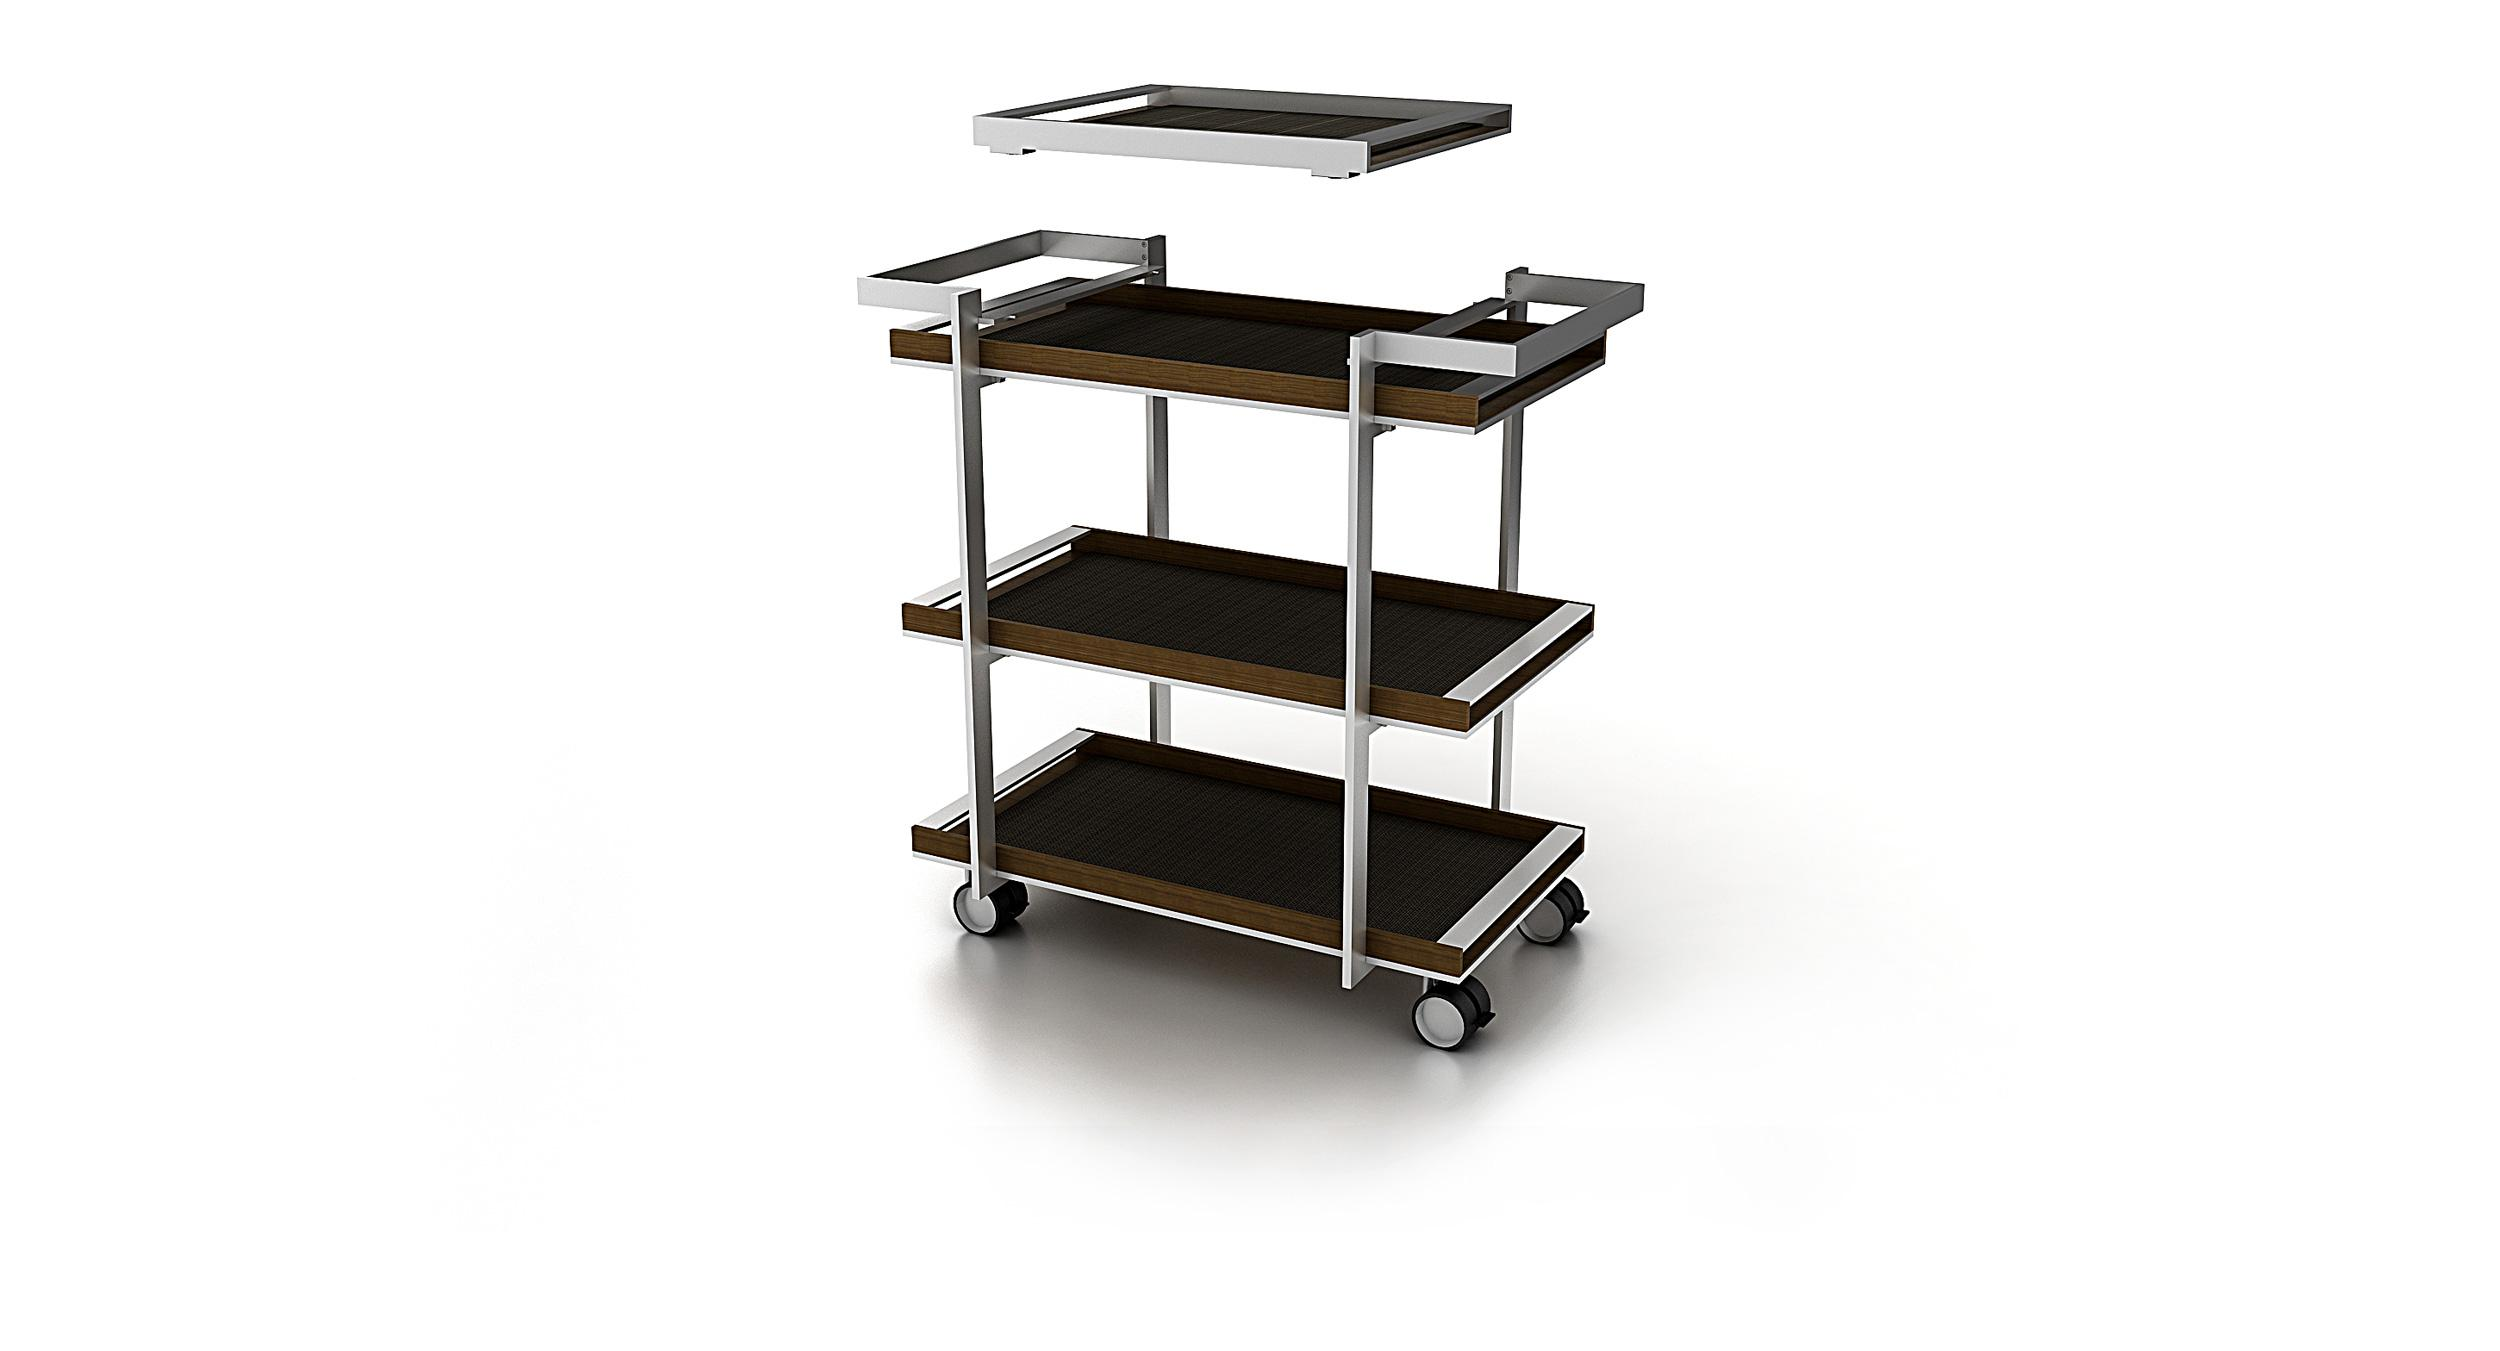 Porter offers a distinctive removable tray to serve fine design and function in equal measure.